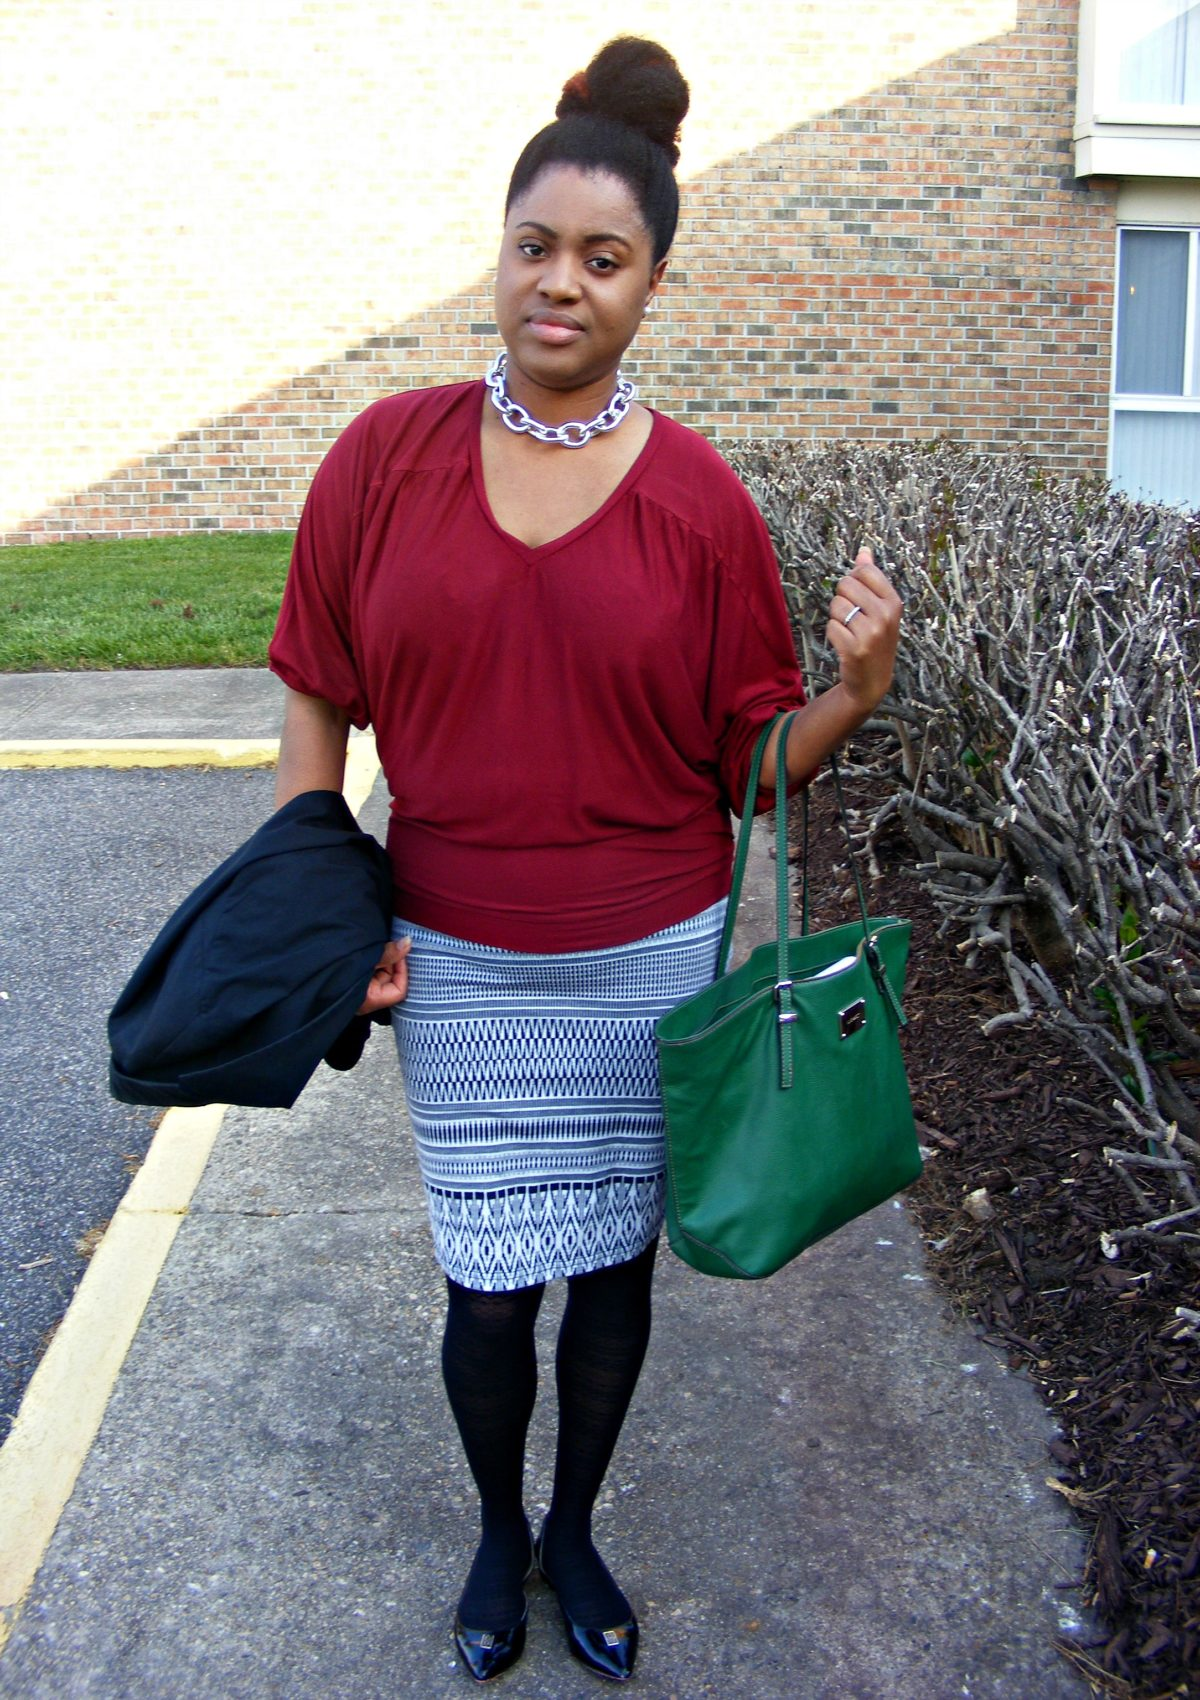 OOTD featuring Gunmetal Link Chain | Sassy Jones Boutique